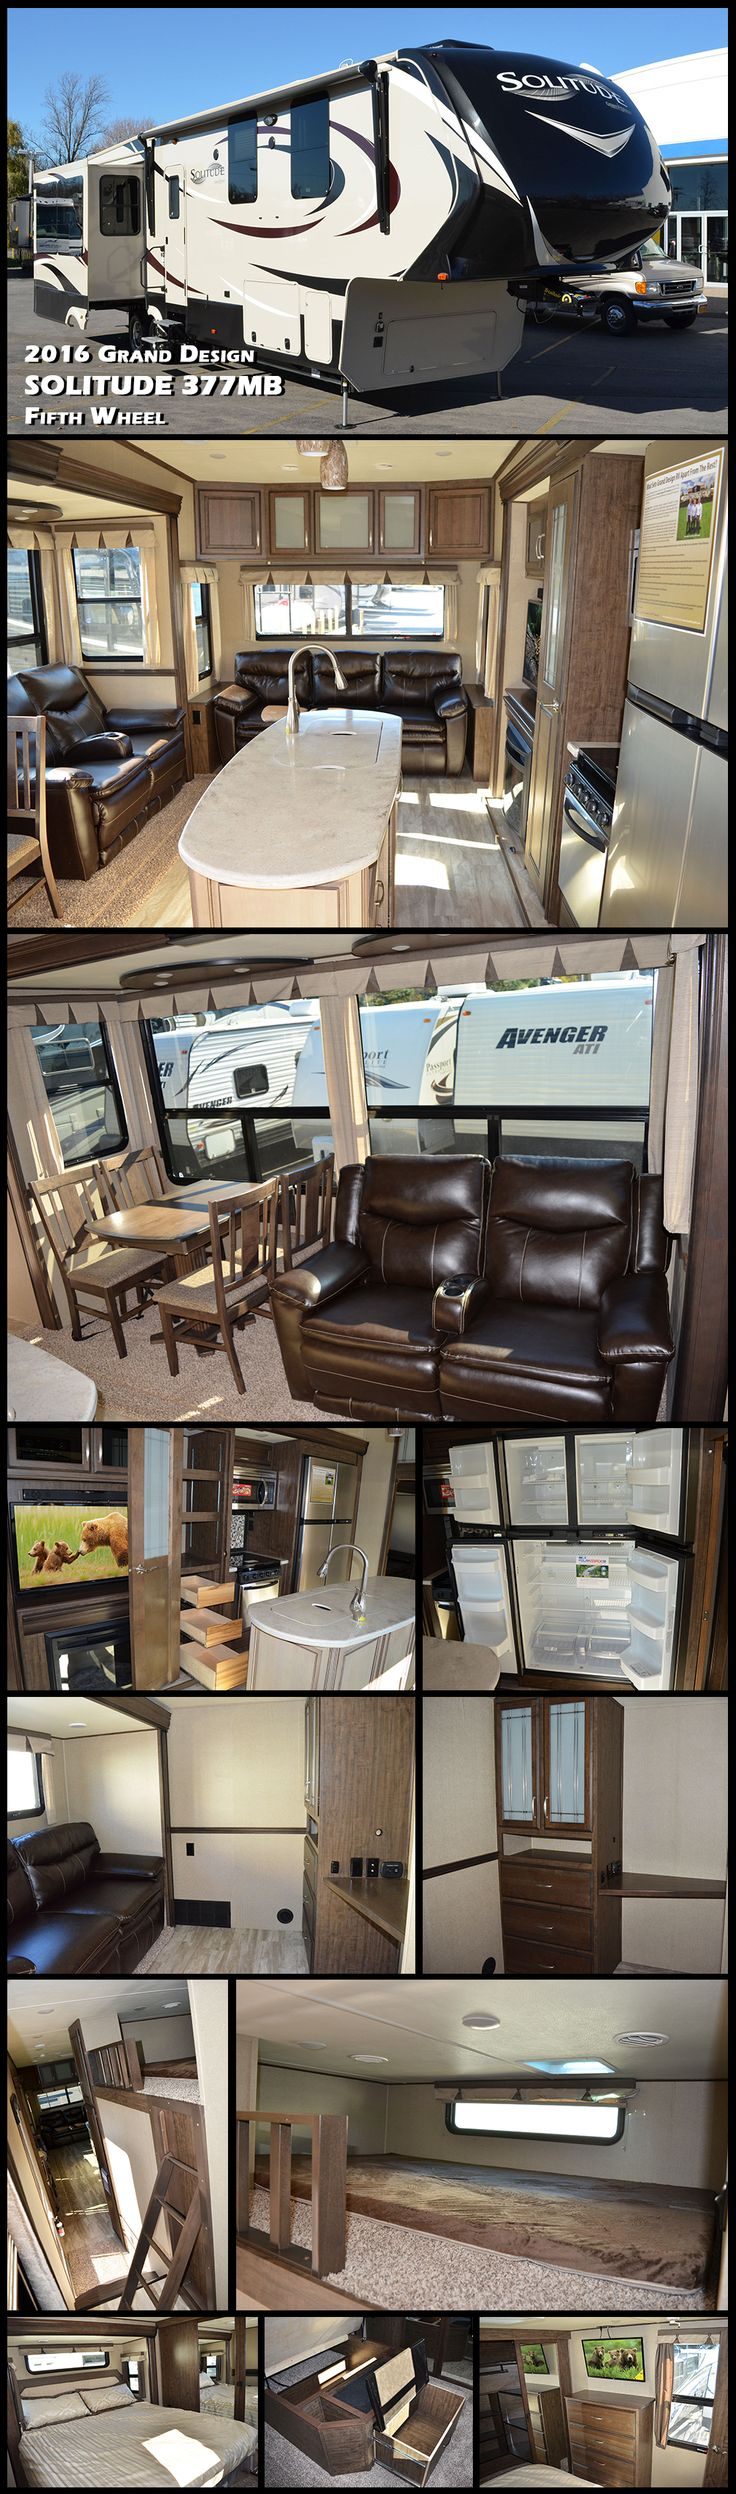 49 best fifth wheel images on pinterest fifth wheel camping